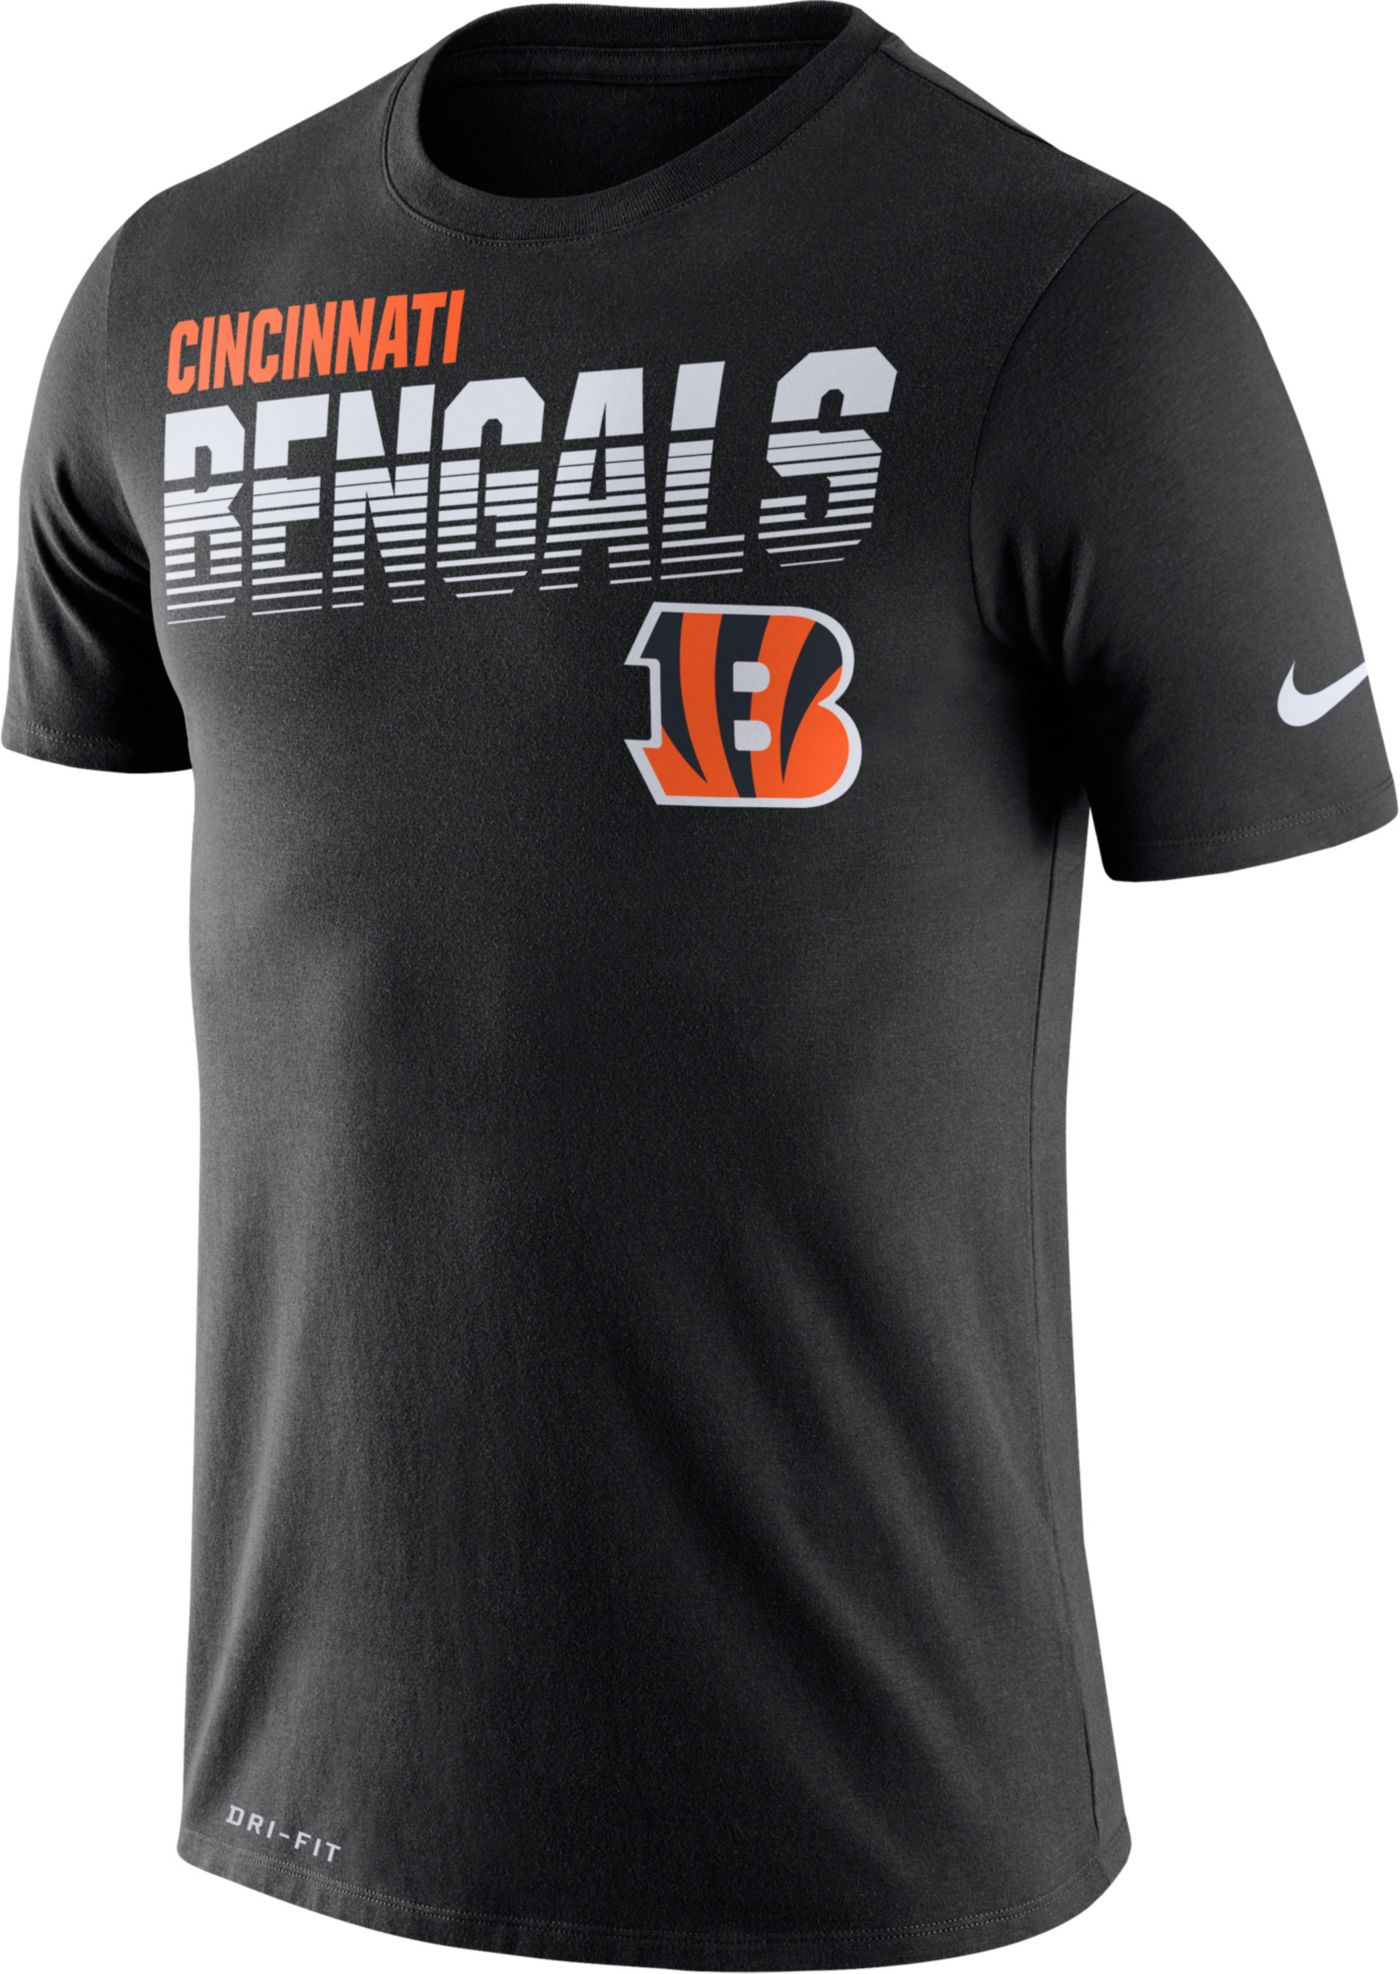 Nike Men's Cincinnati Bengals Sideline Legend Performance Black T-Shirt